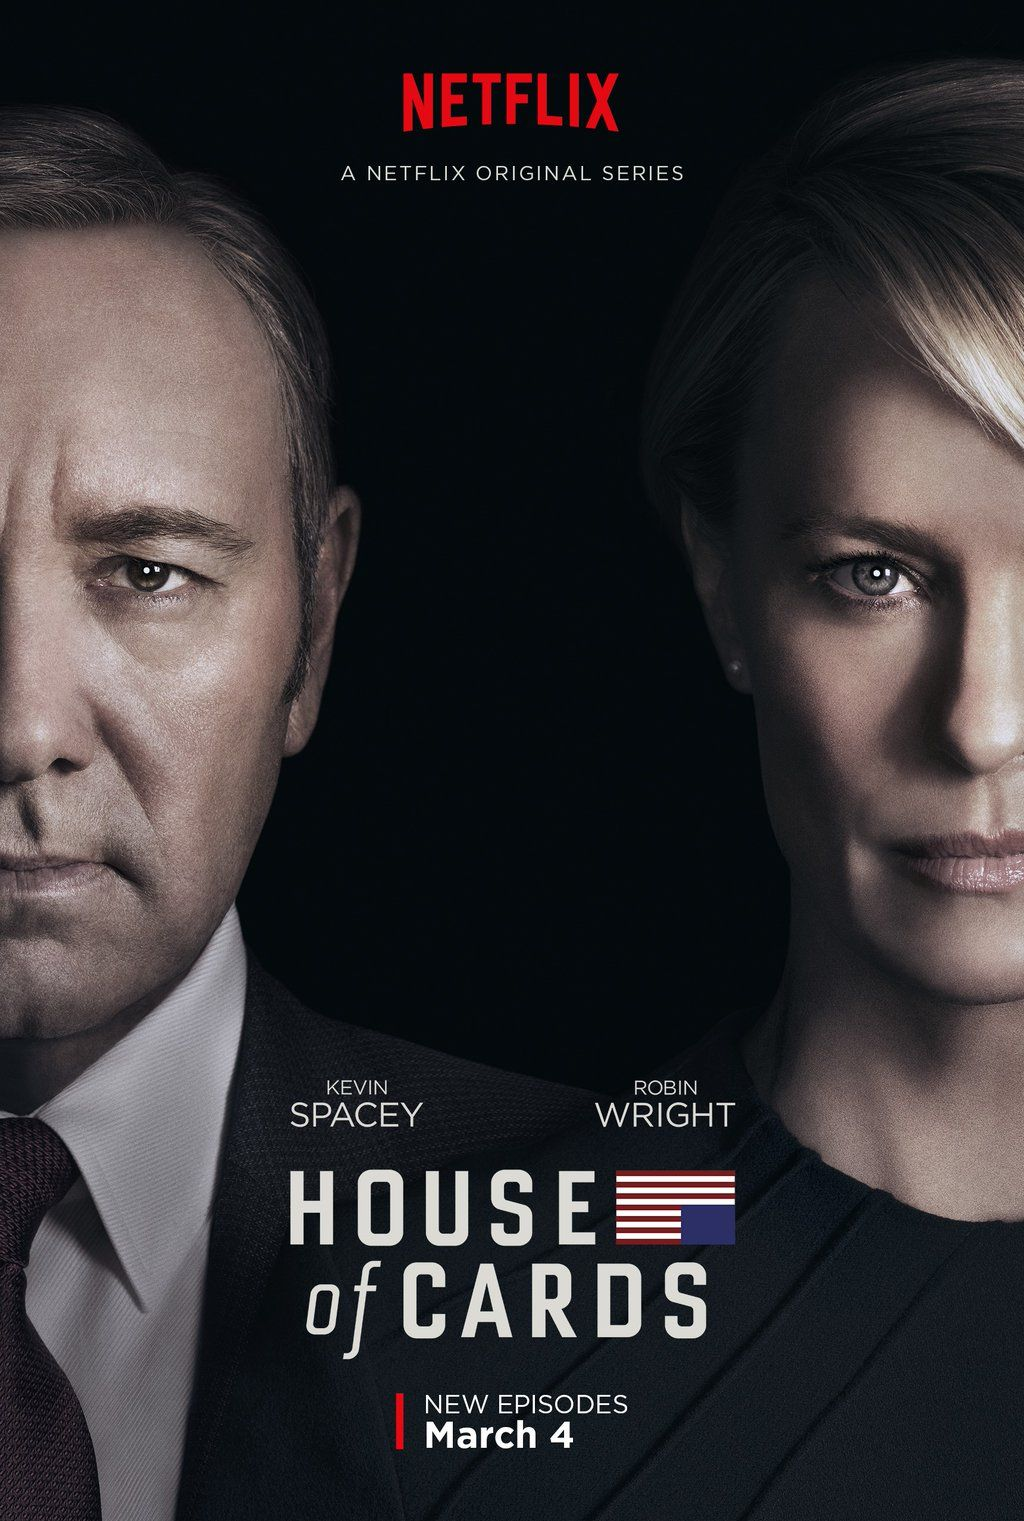 House Of Cards Houseofcards House Of Cards Seasons House Of Cards Tv Series To Watch